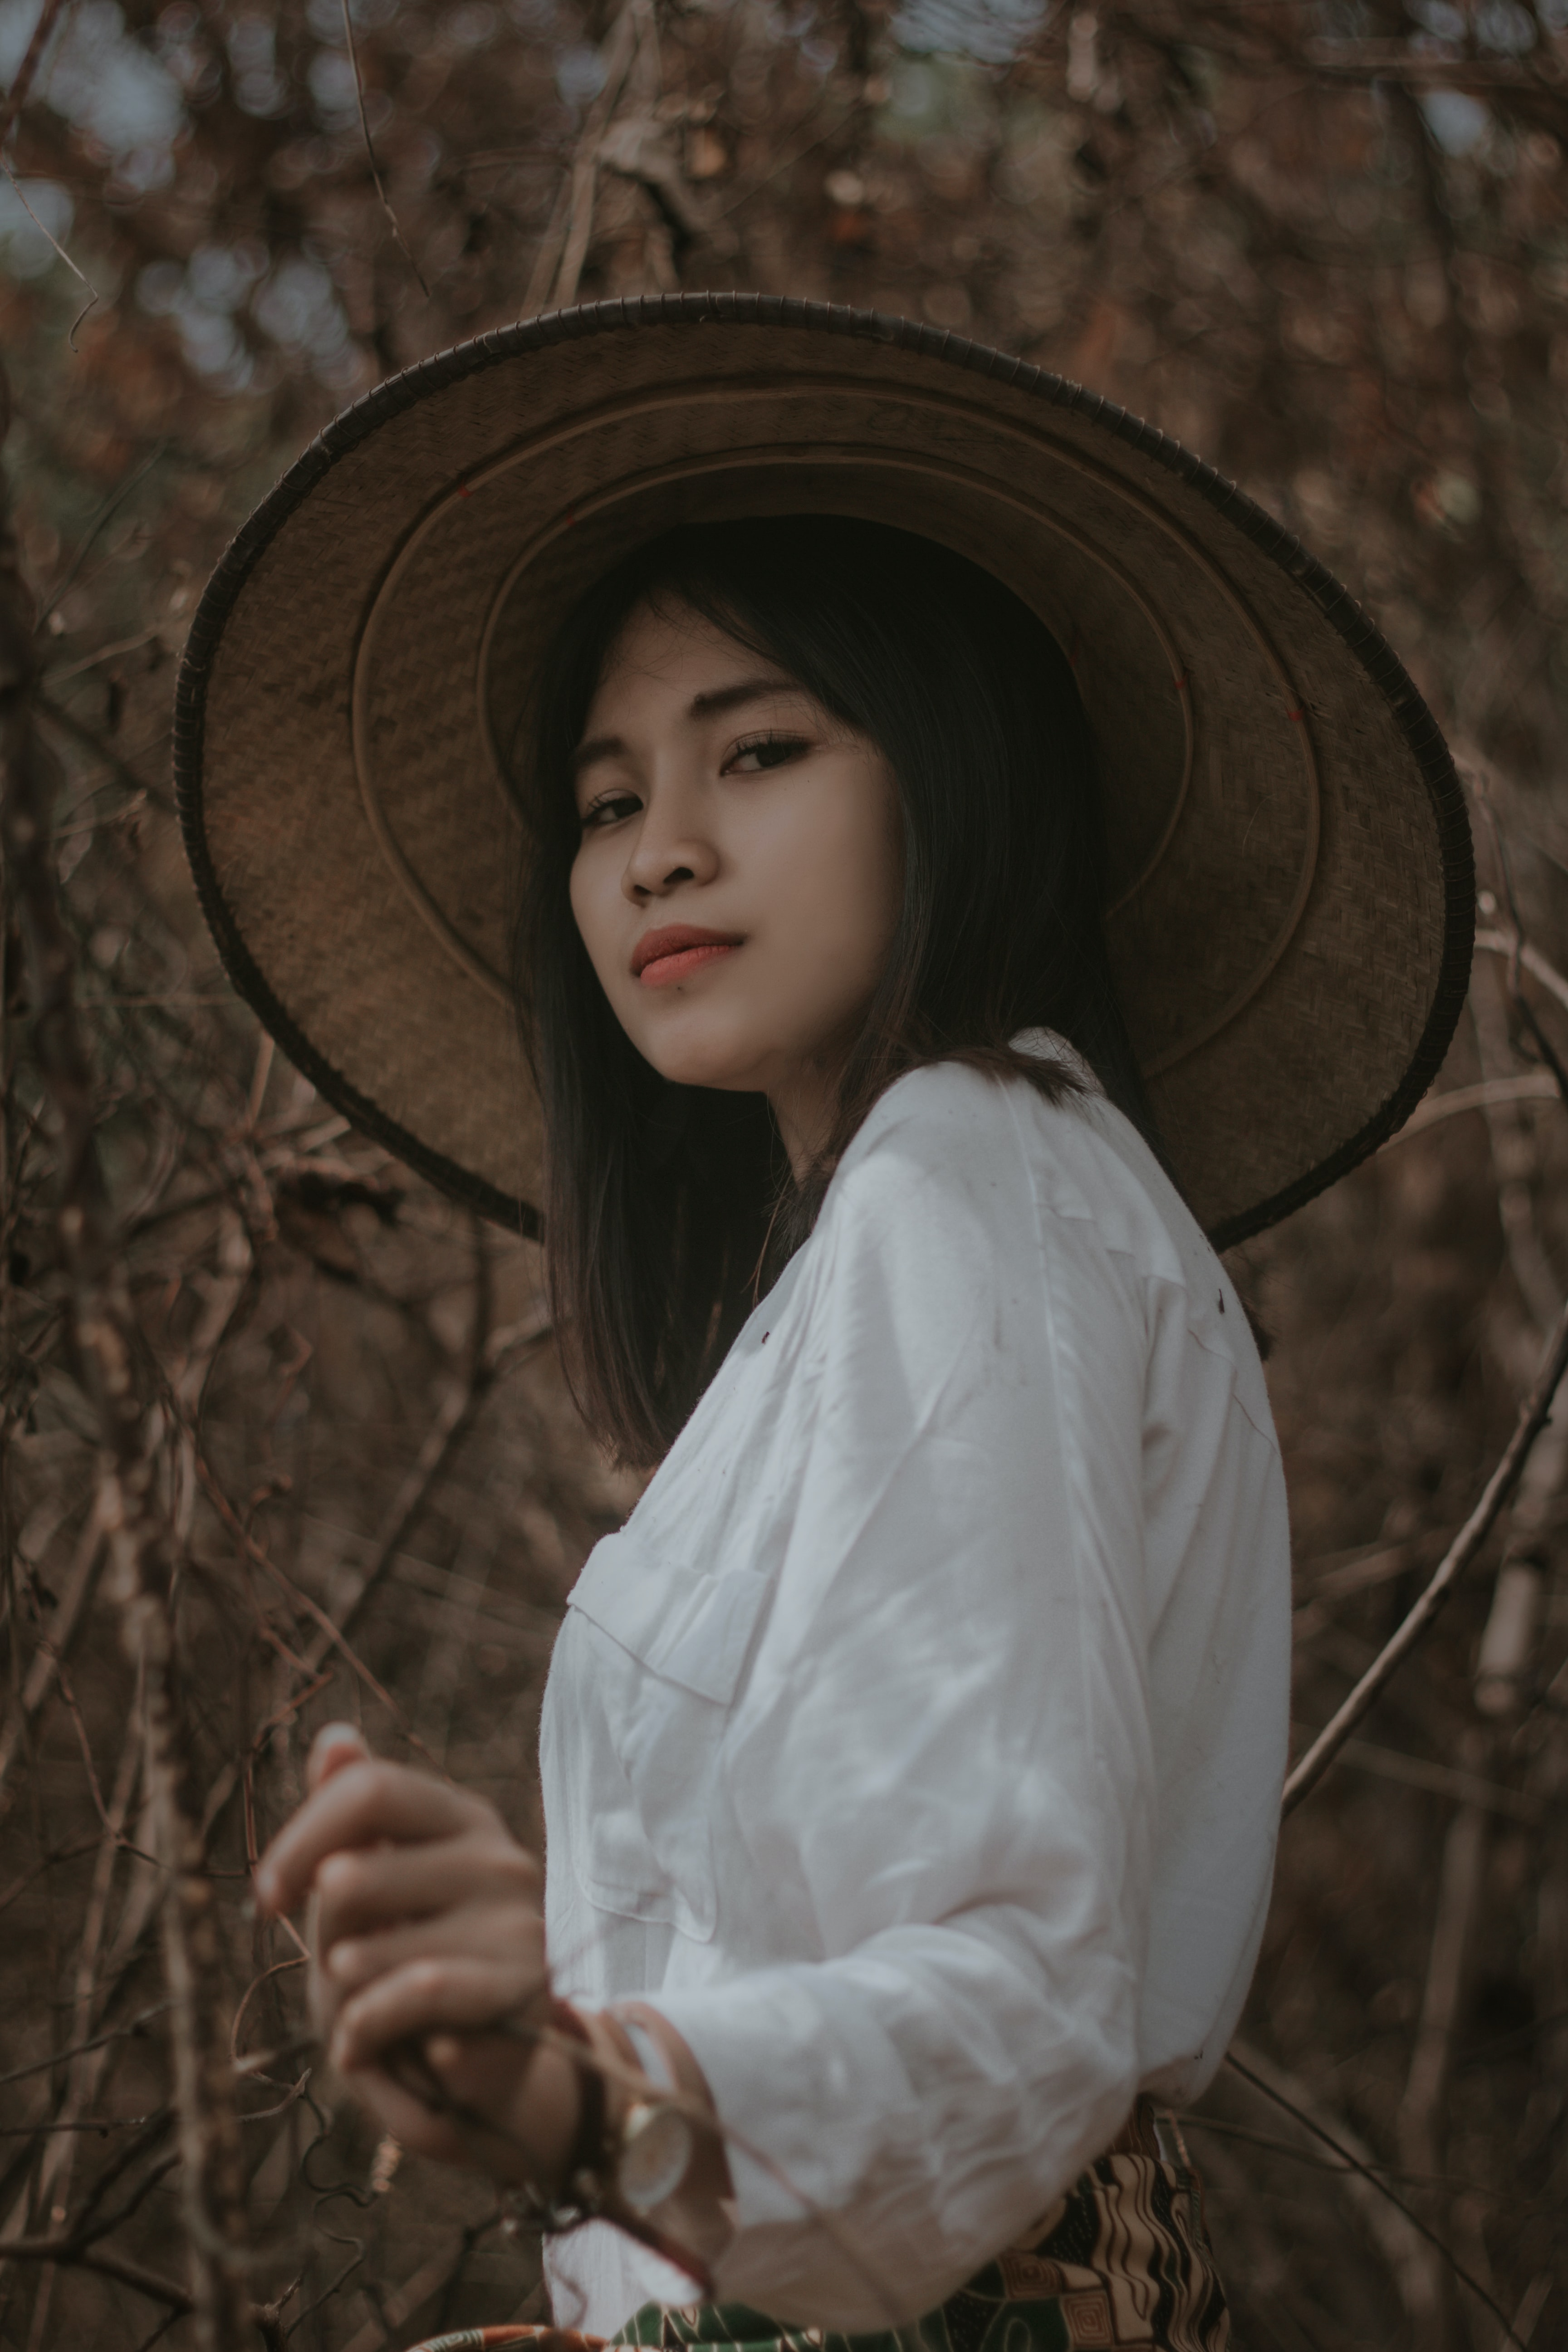 woman wearing conical hat surrounded by trees